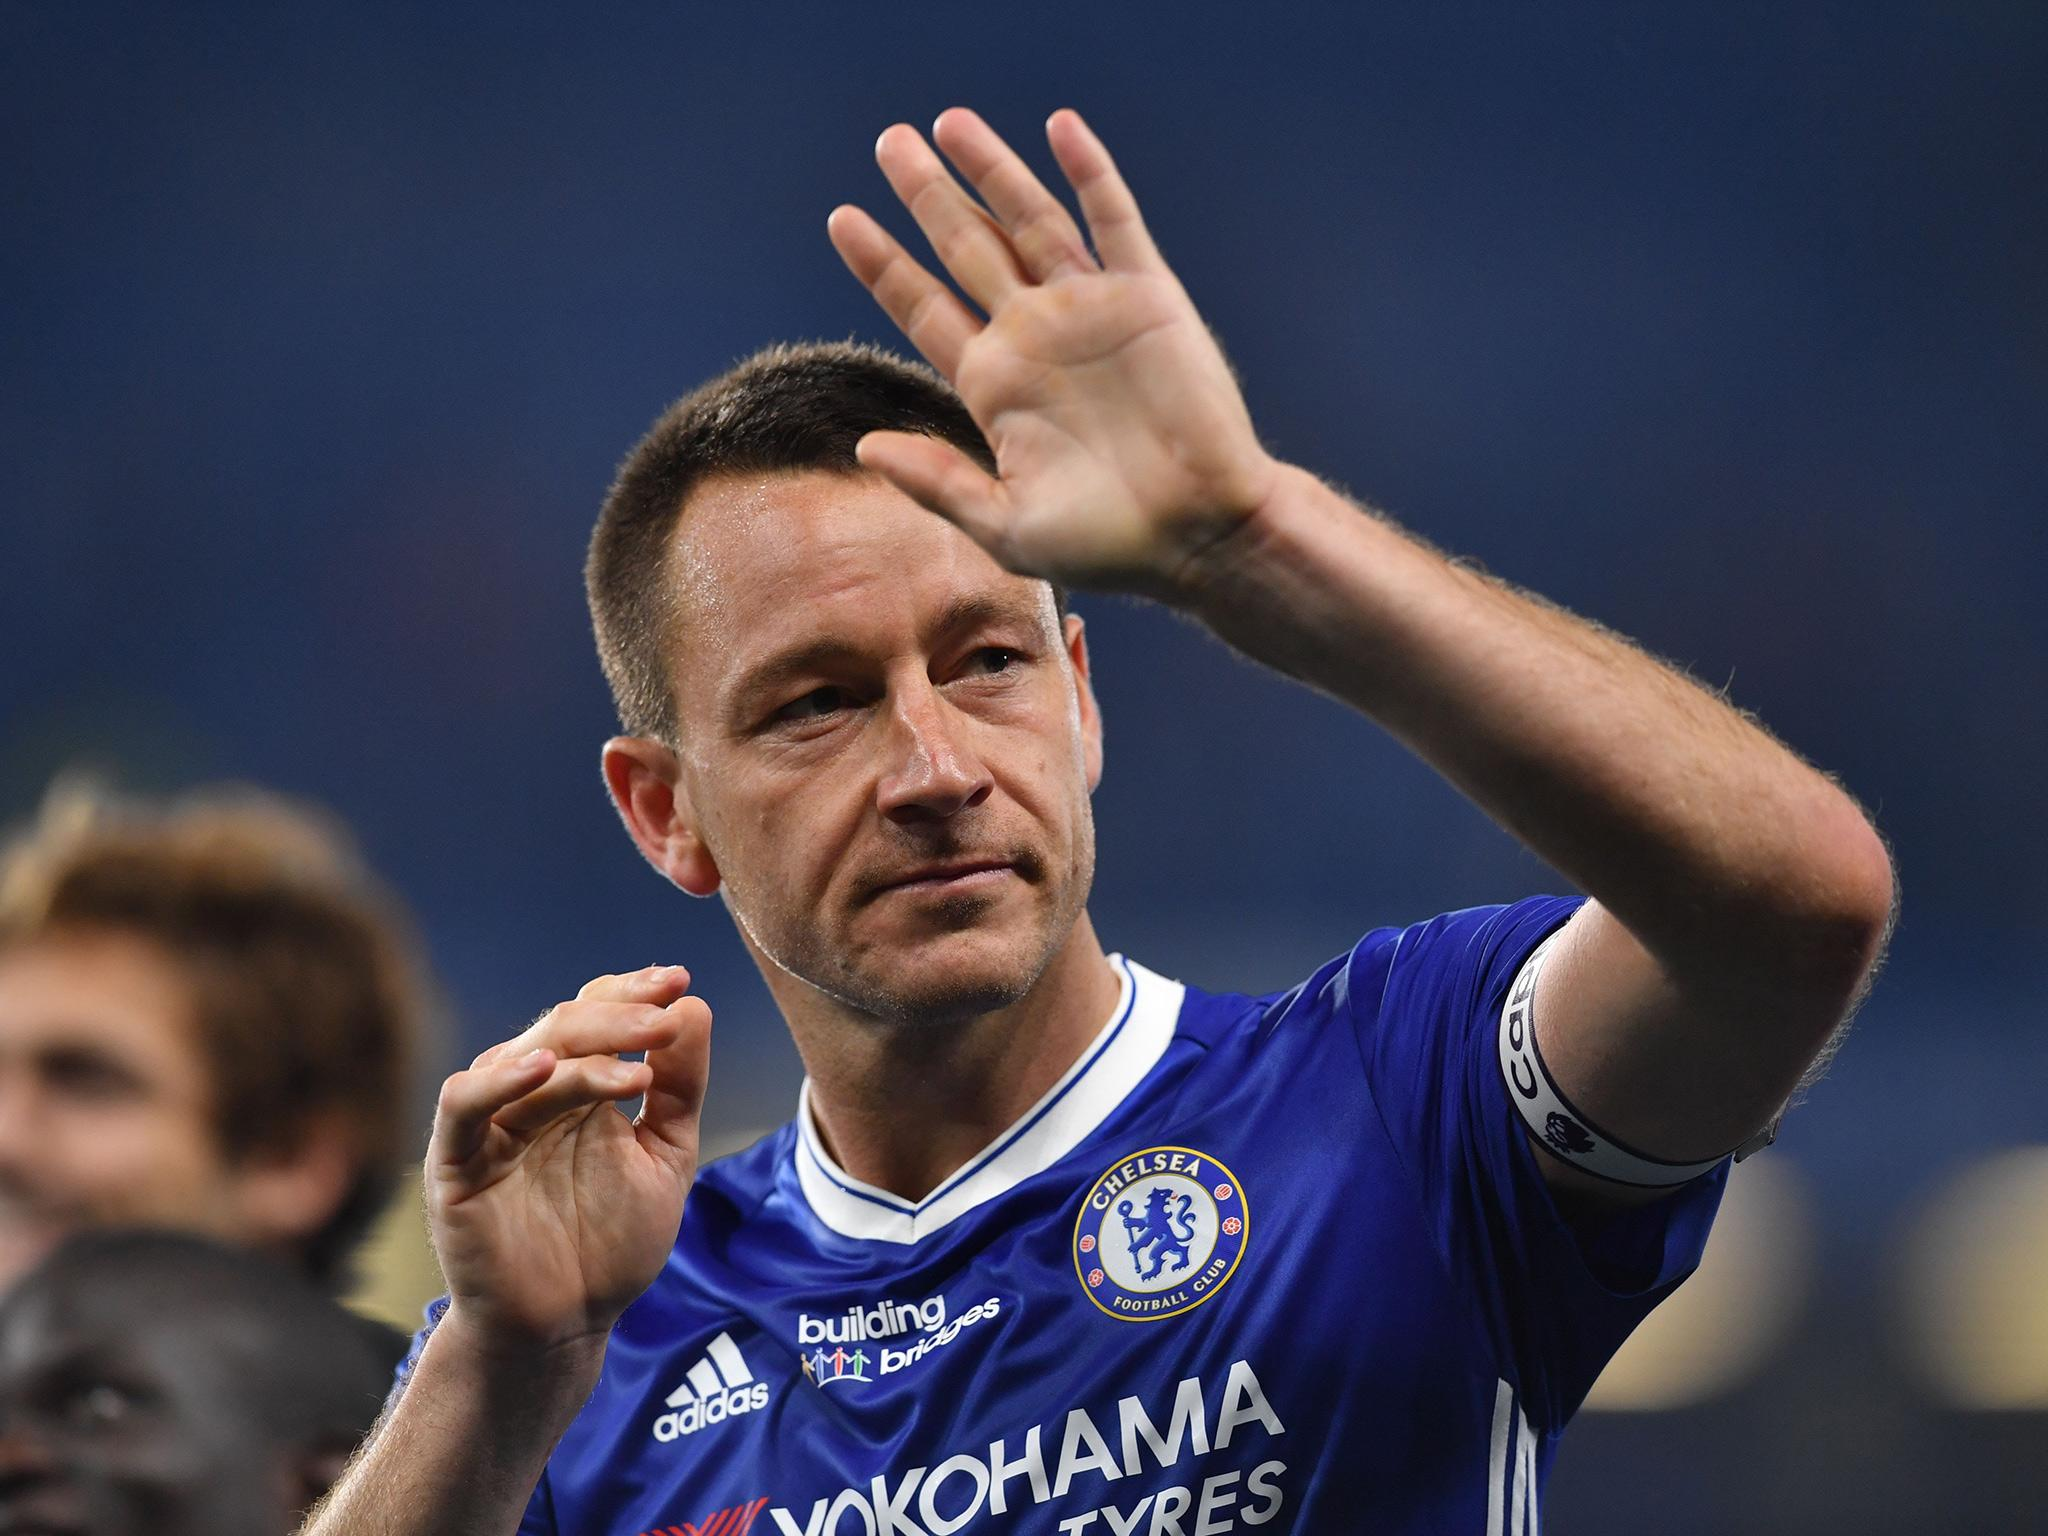 Antonio Conte backs John Terry to be a 'good manager' ahead of Chelsea swansong